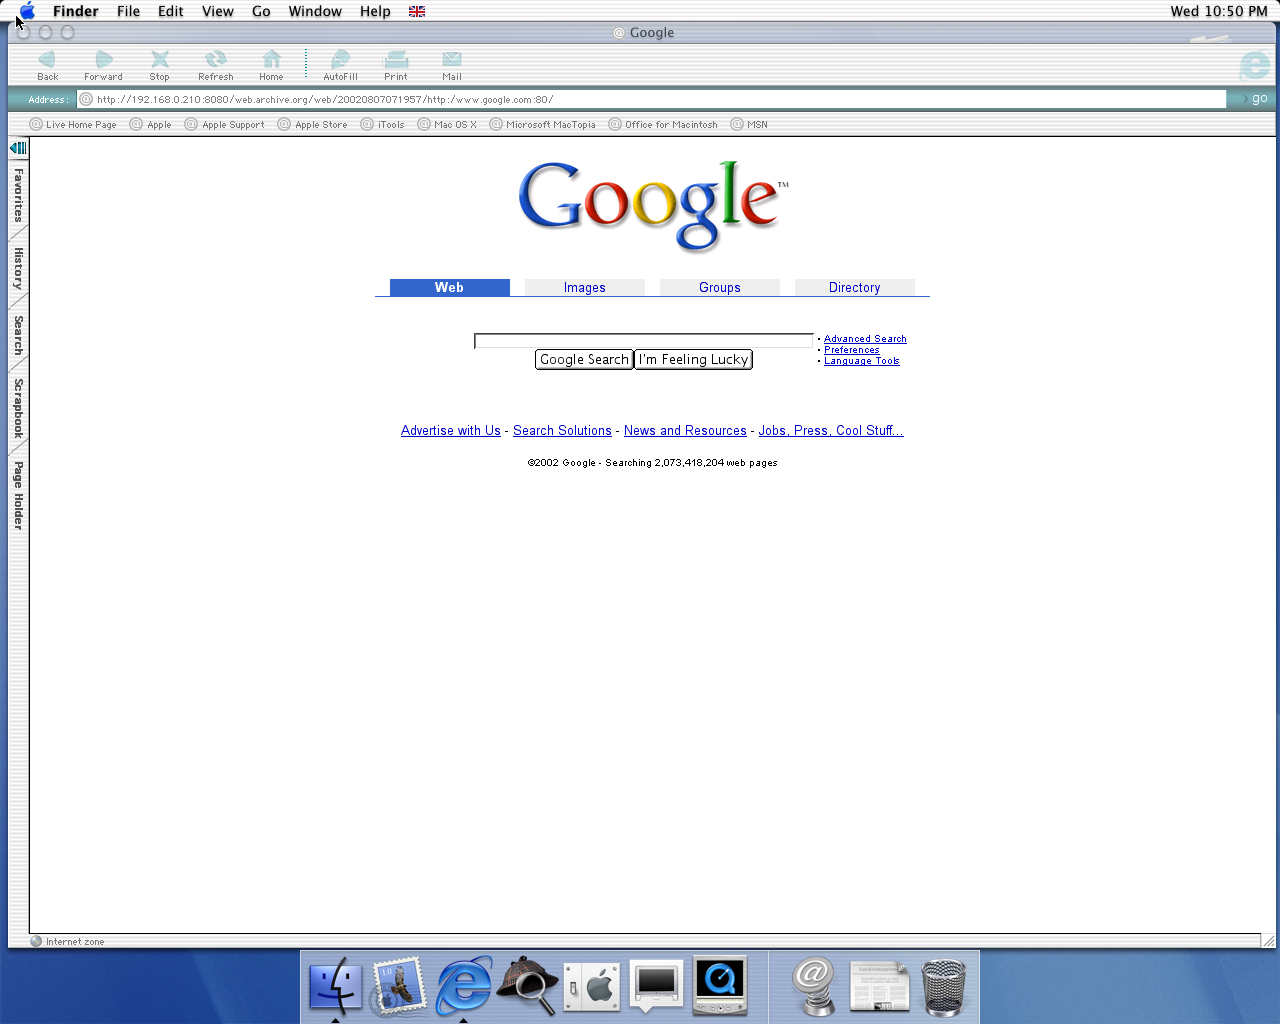 OS X 10.0 PPC with Microsoft Internet Explorer 5.1 for Mac Preview displaying a page from Google.com archived at August 07, 2002 at 07:19:57